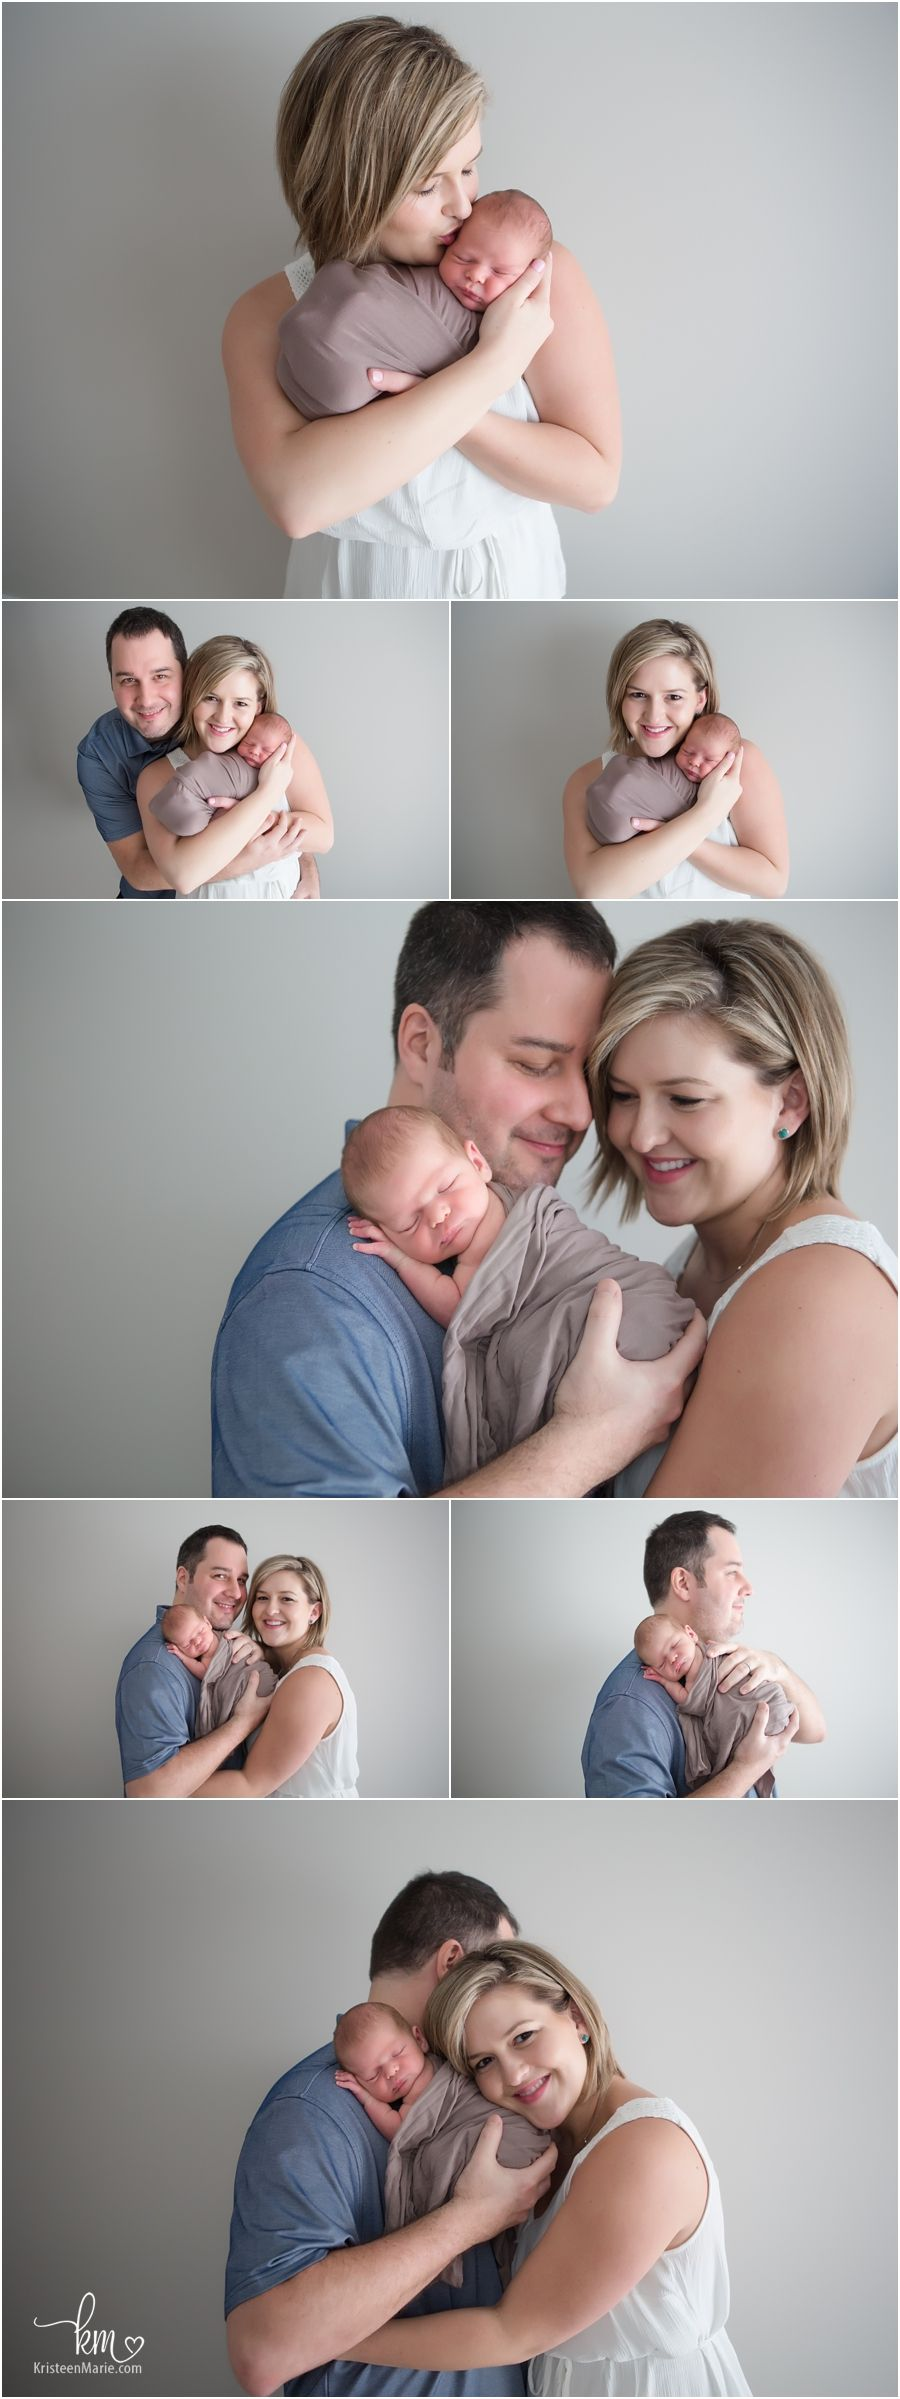 Parents and newborn baby family newborn photography poses in studio